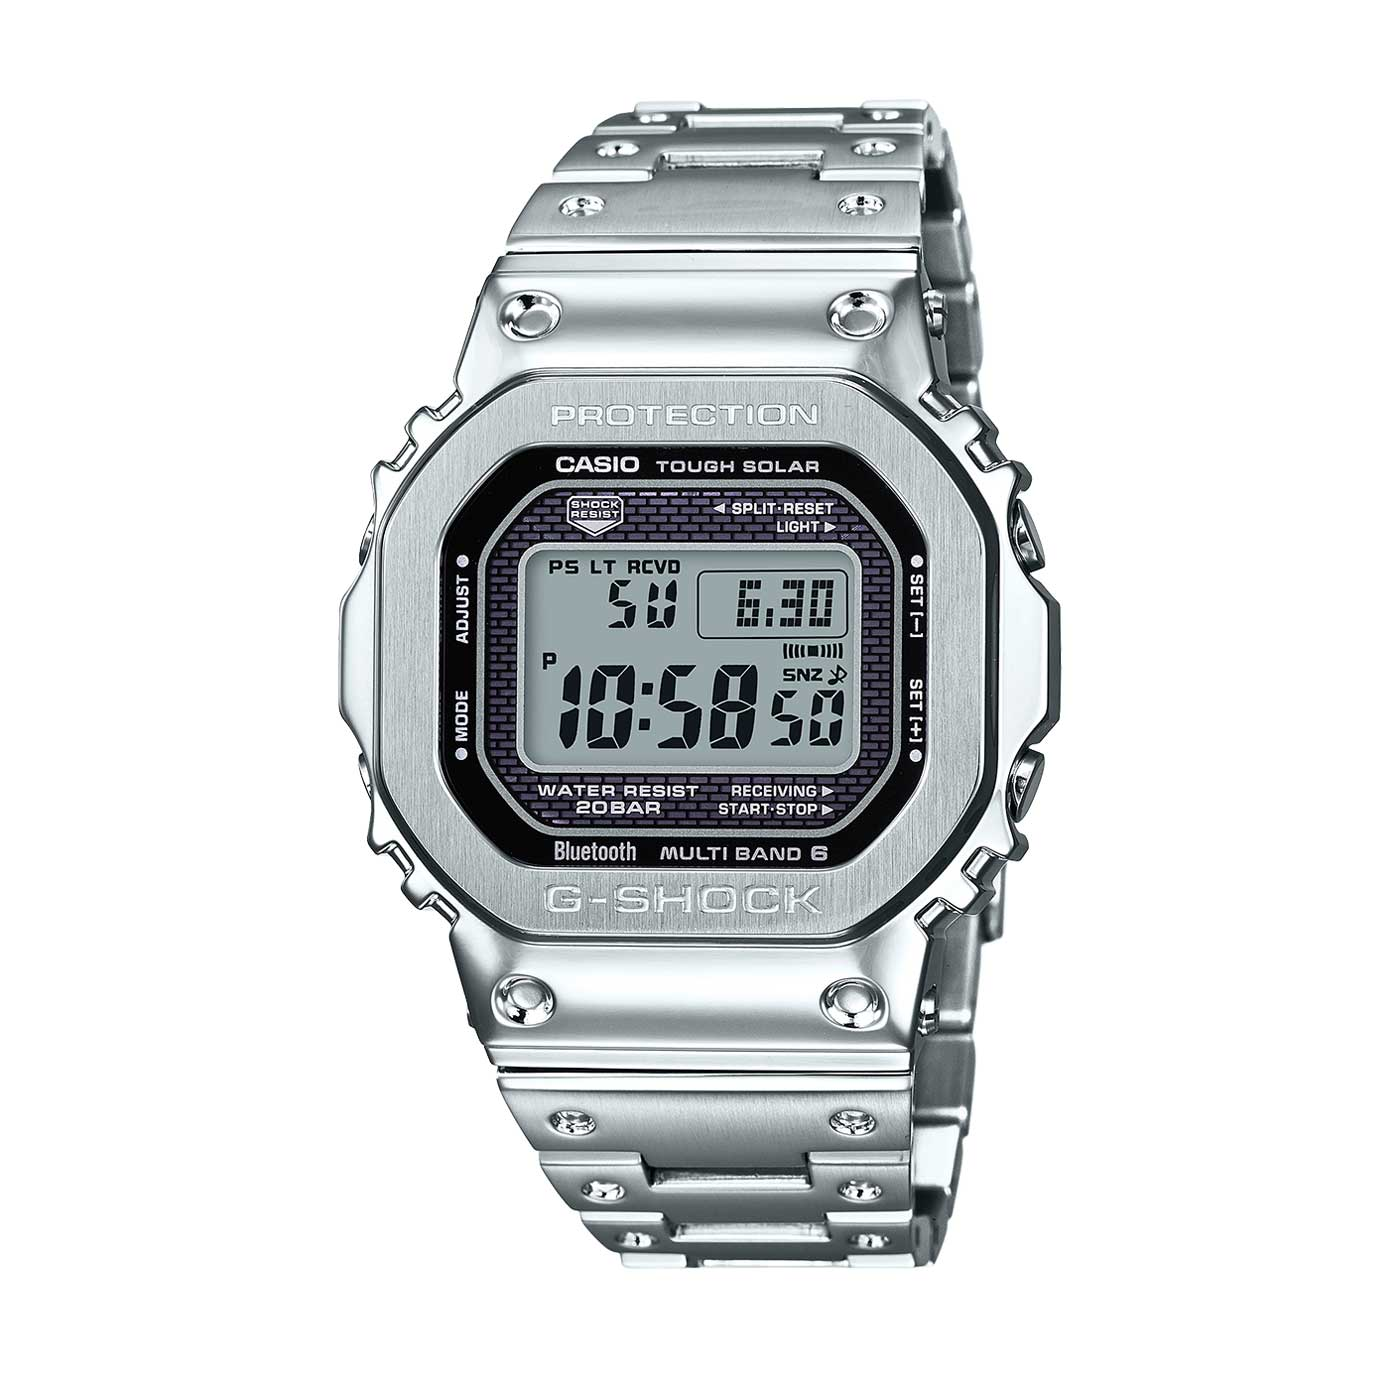 G-SHOCK Full Metal 5000 GMW-B5000D-1 in stainless steel